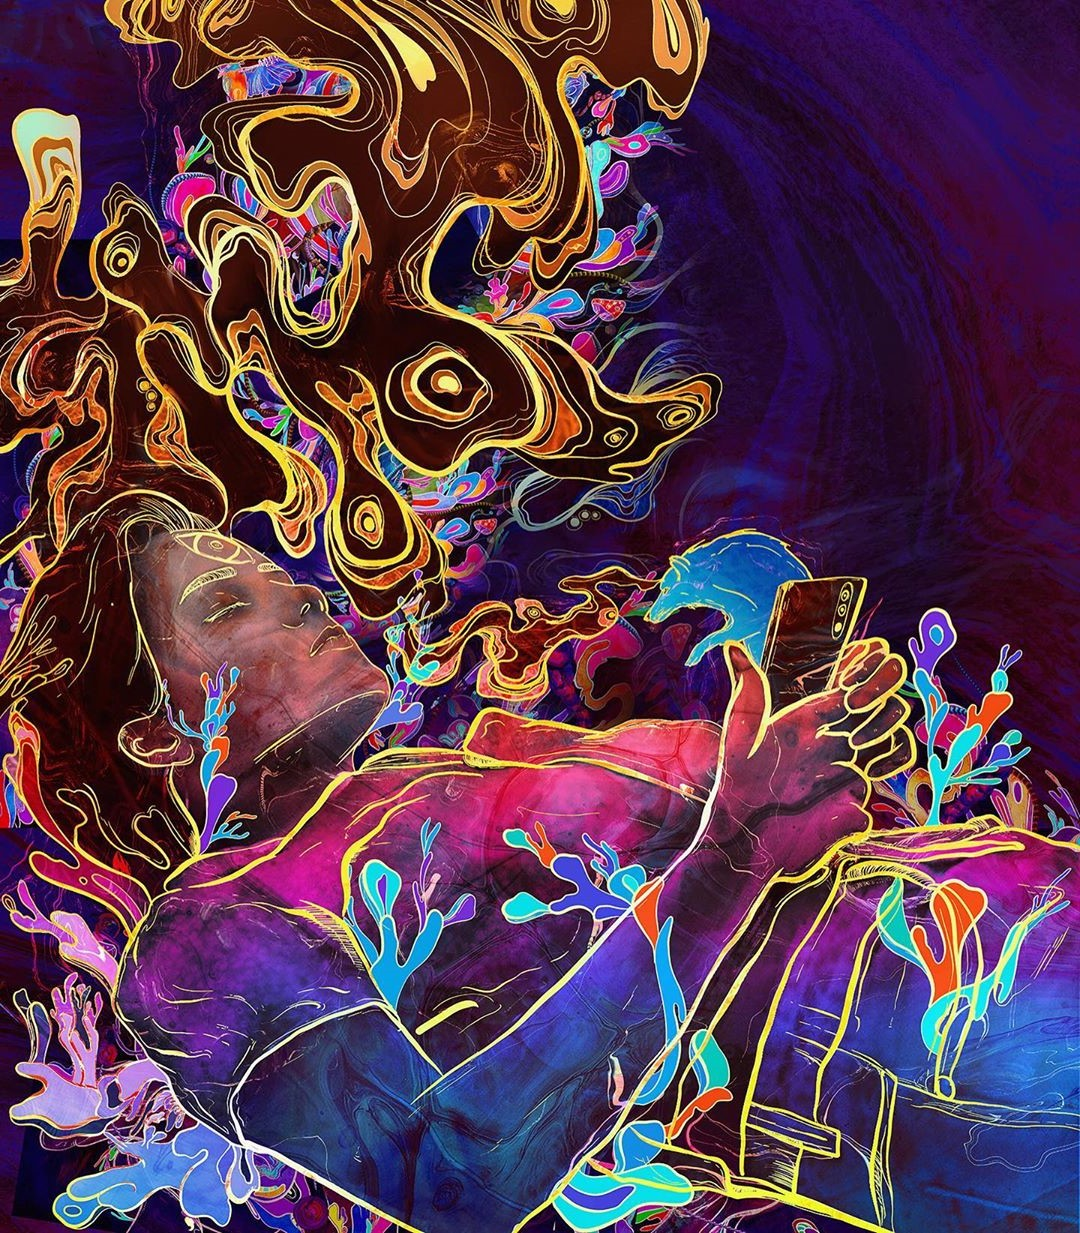 4. Archan Nair | 8 Insanely Psychedelic Must-Follow Instagram Artists | Brain Berries